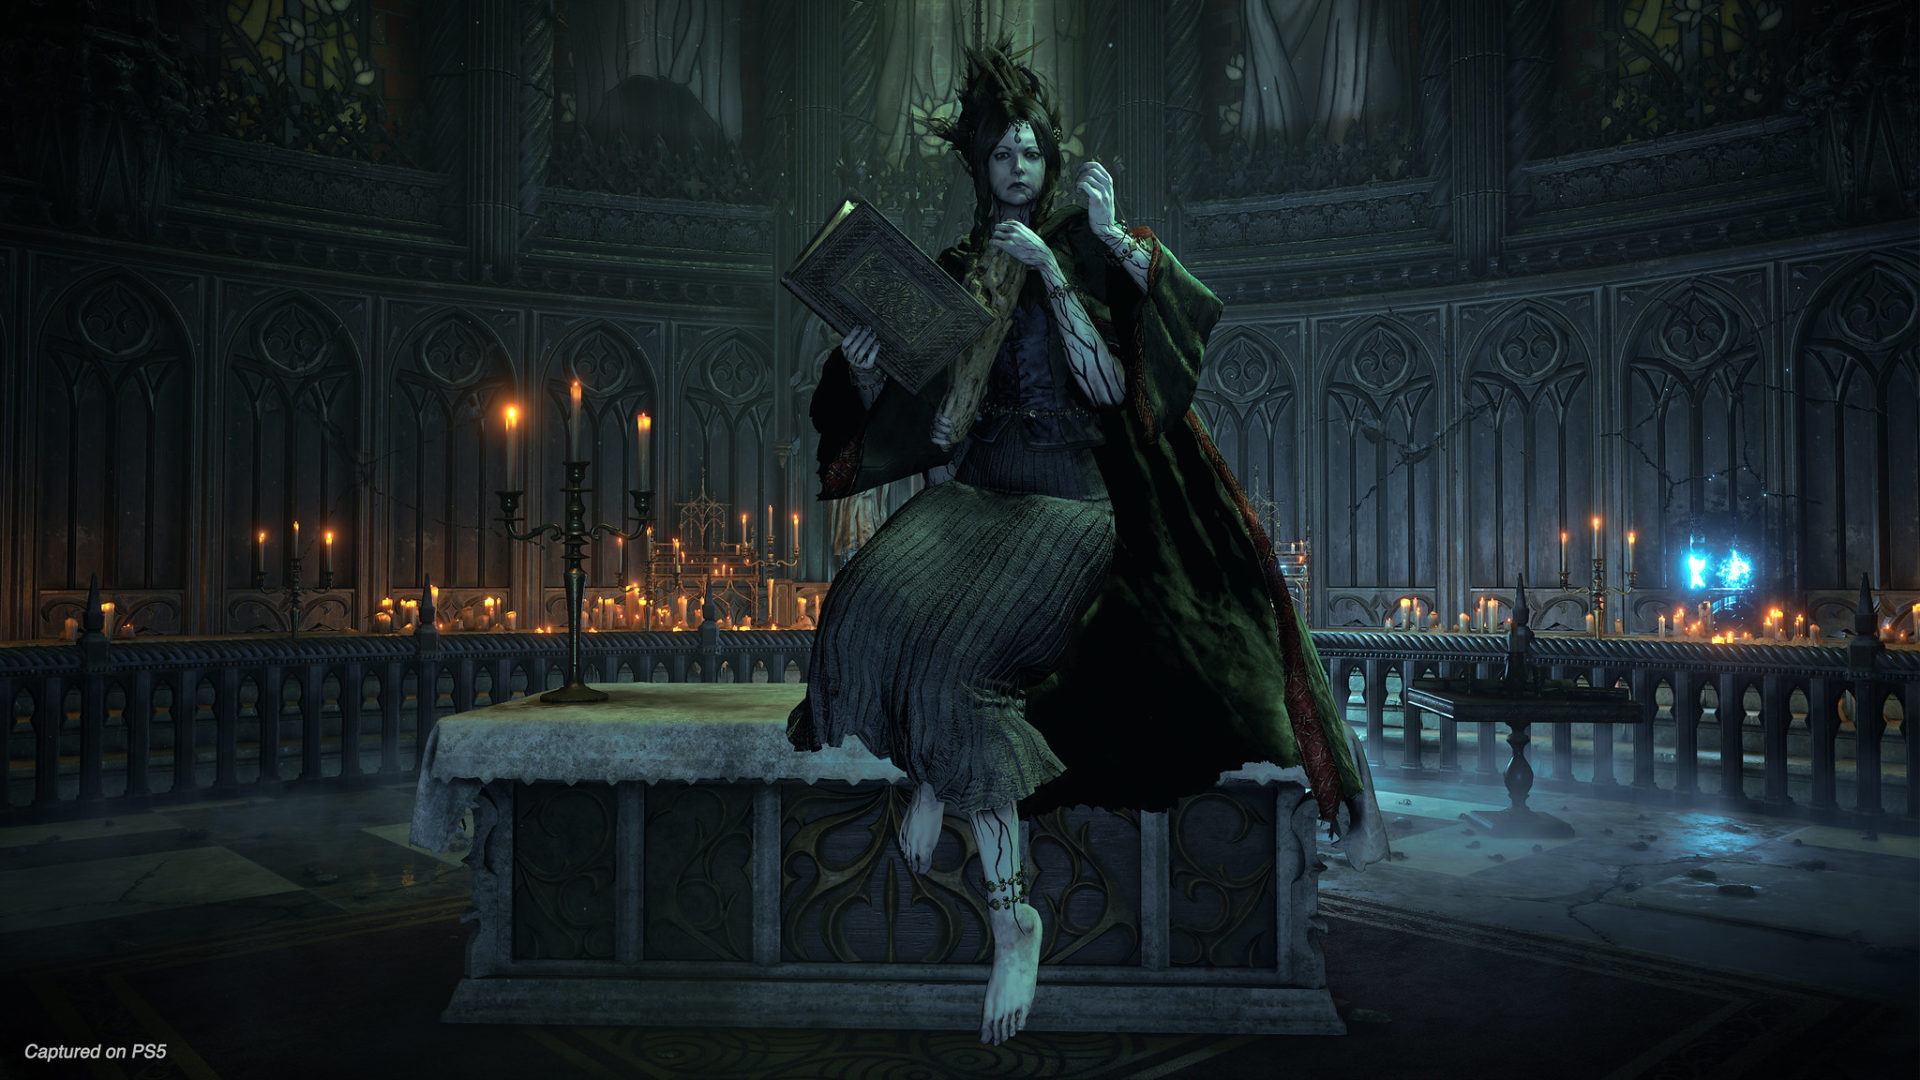 Demon's Souls image of a woman sitting in a church